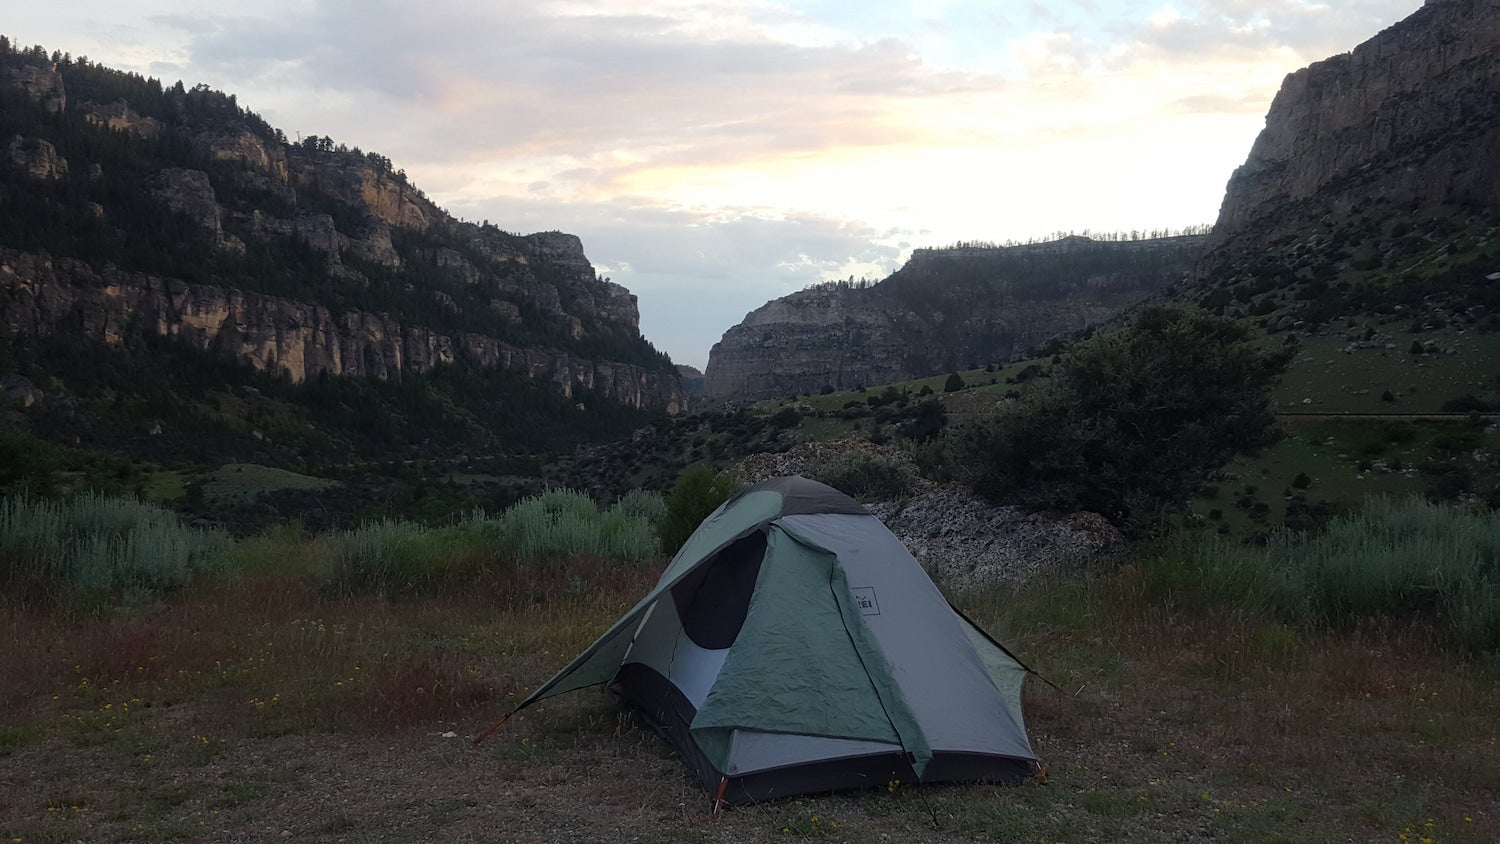 tent in rocks at sunset